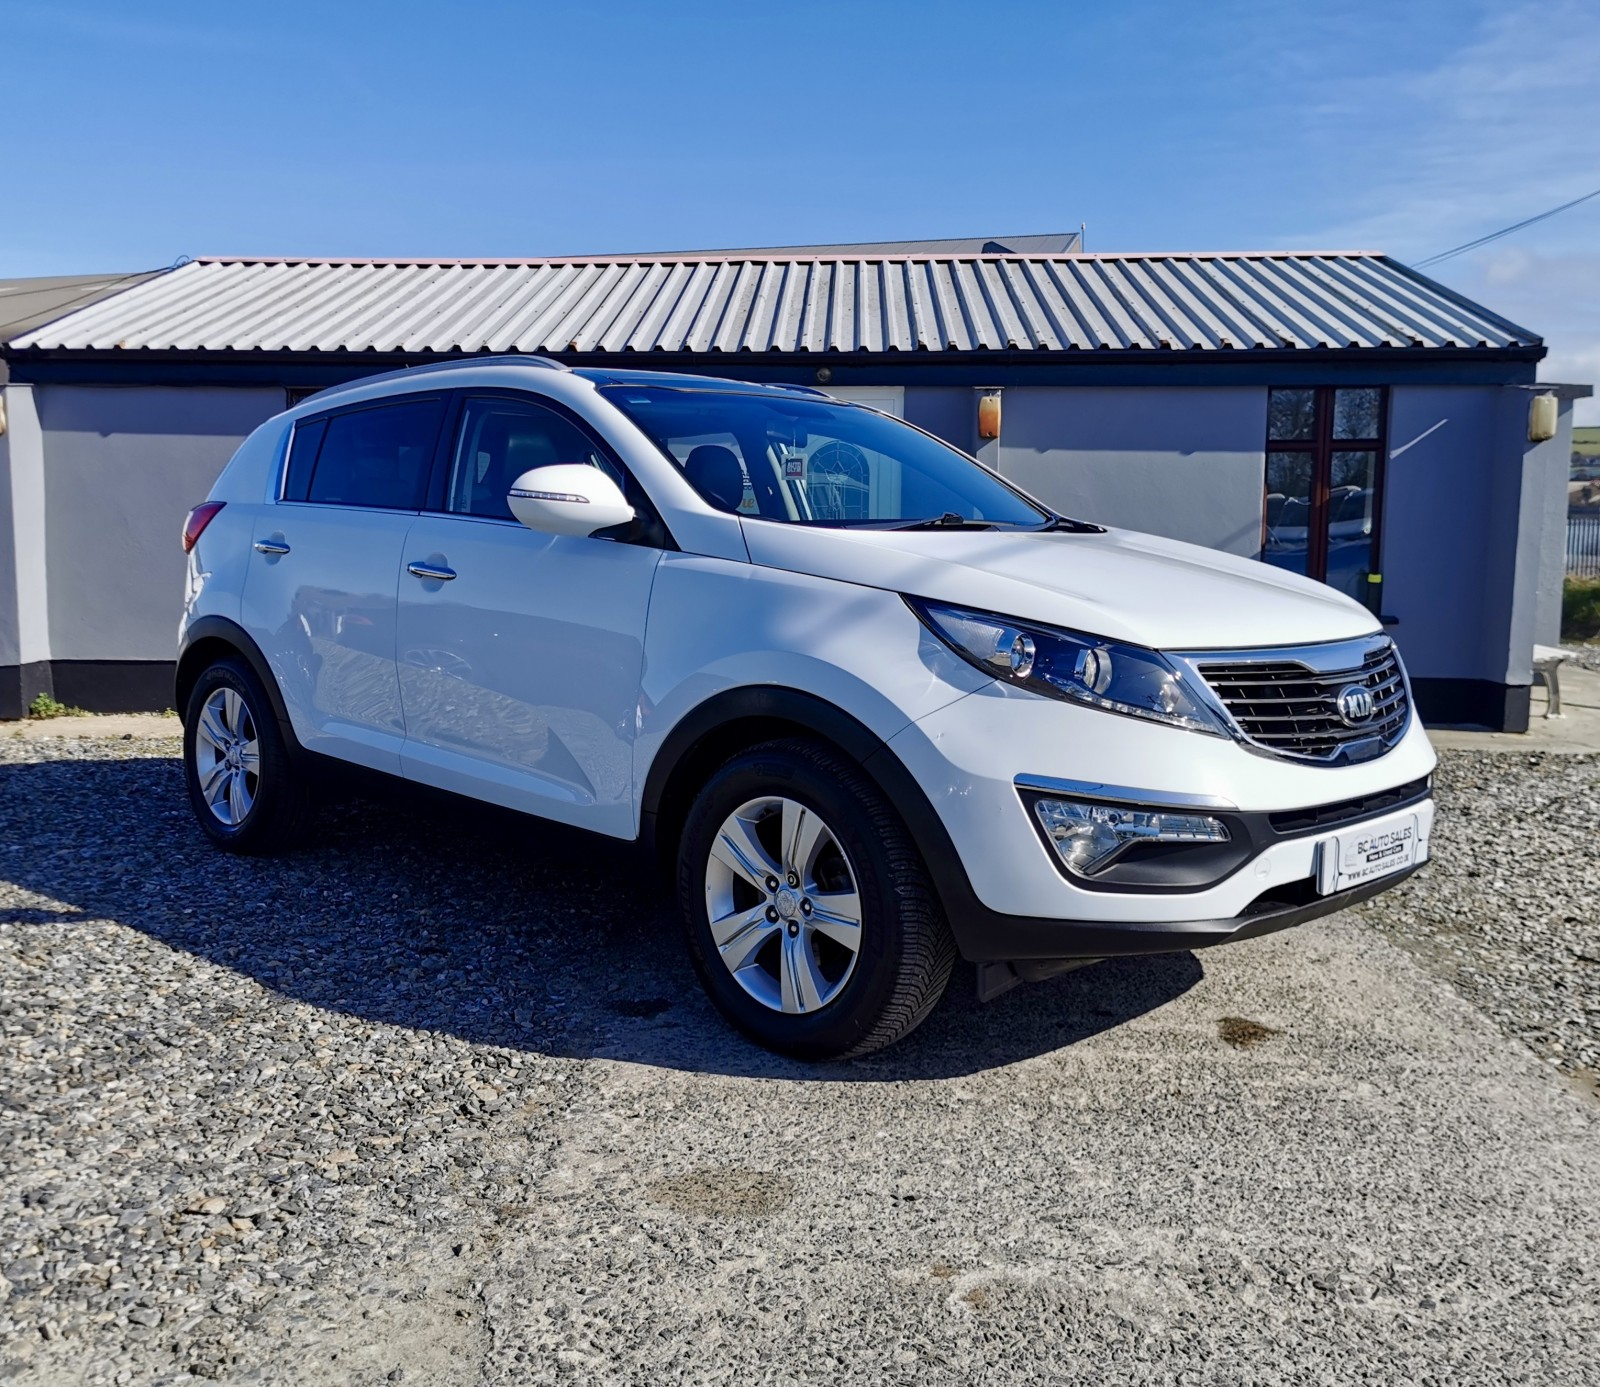 2013 Kia Sportage CRDI 2 Diesel Manual – BC Autosales 17A Airfield Road, Eglinton, Londonderry BT47 3PZ, UK